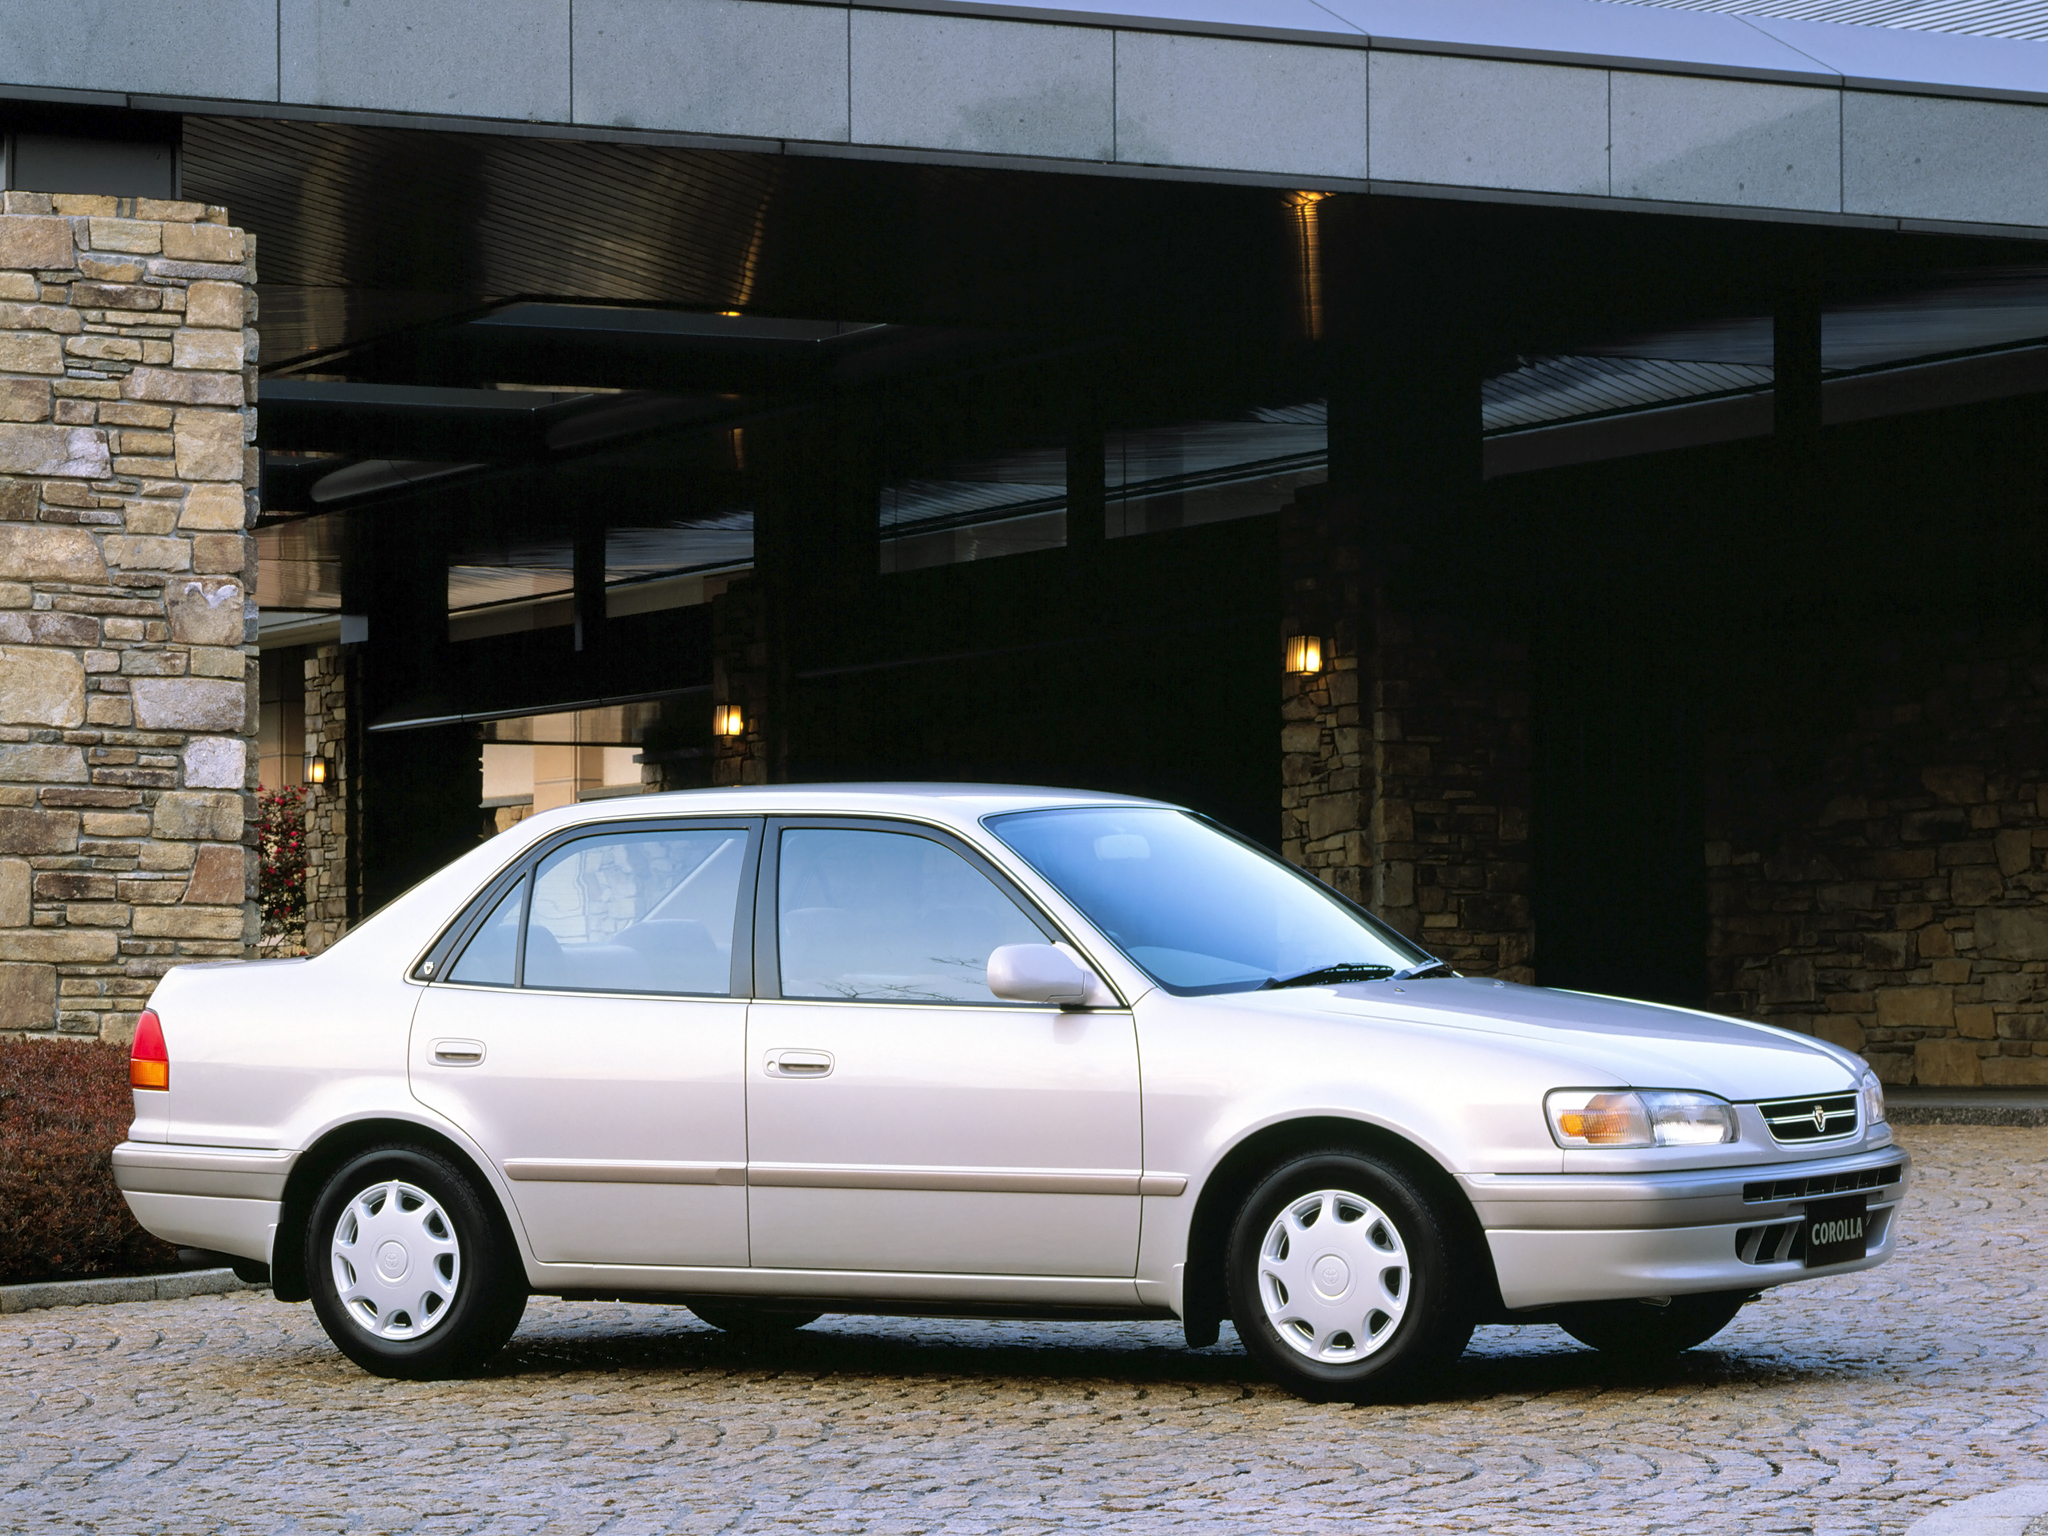 Toyota Corolla 1.5 1996 photo - 1